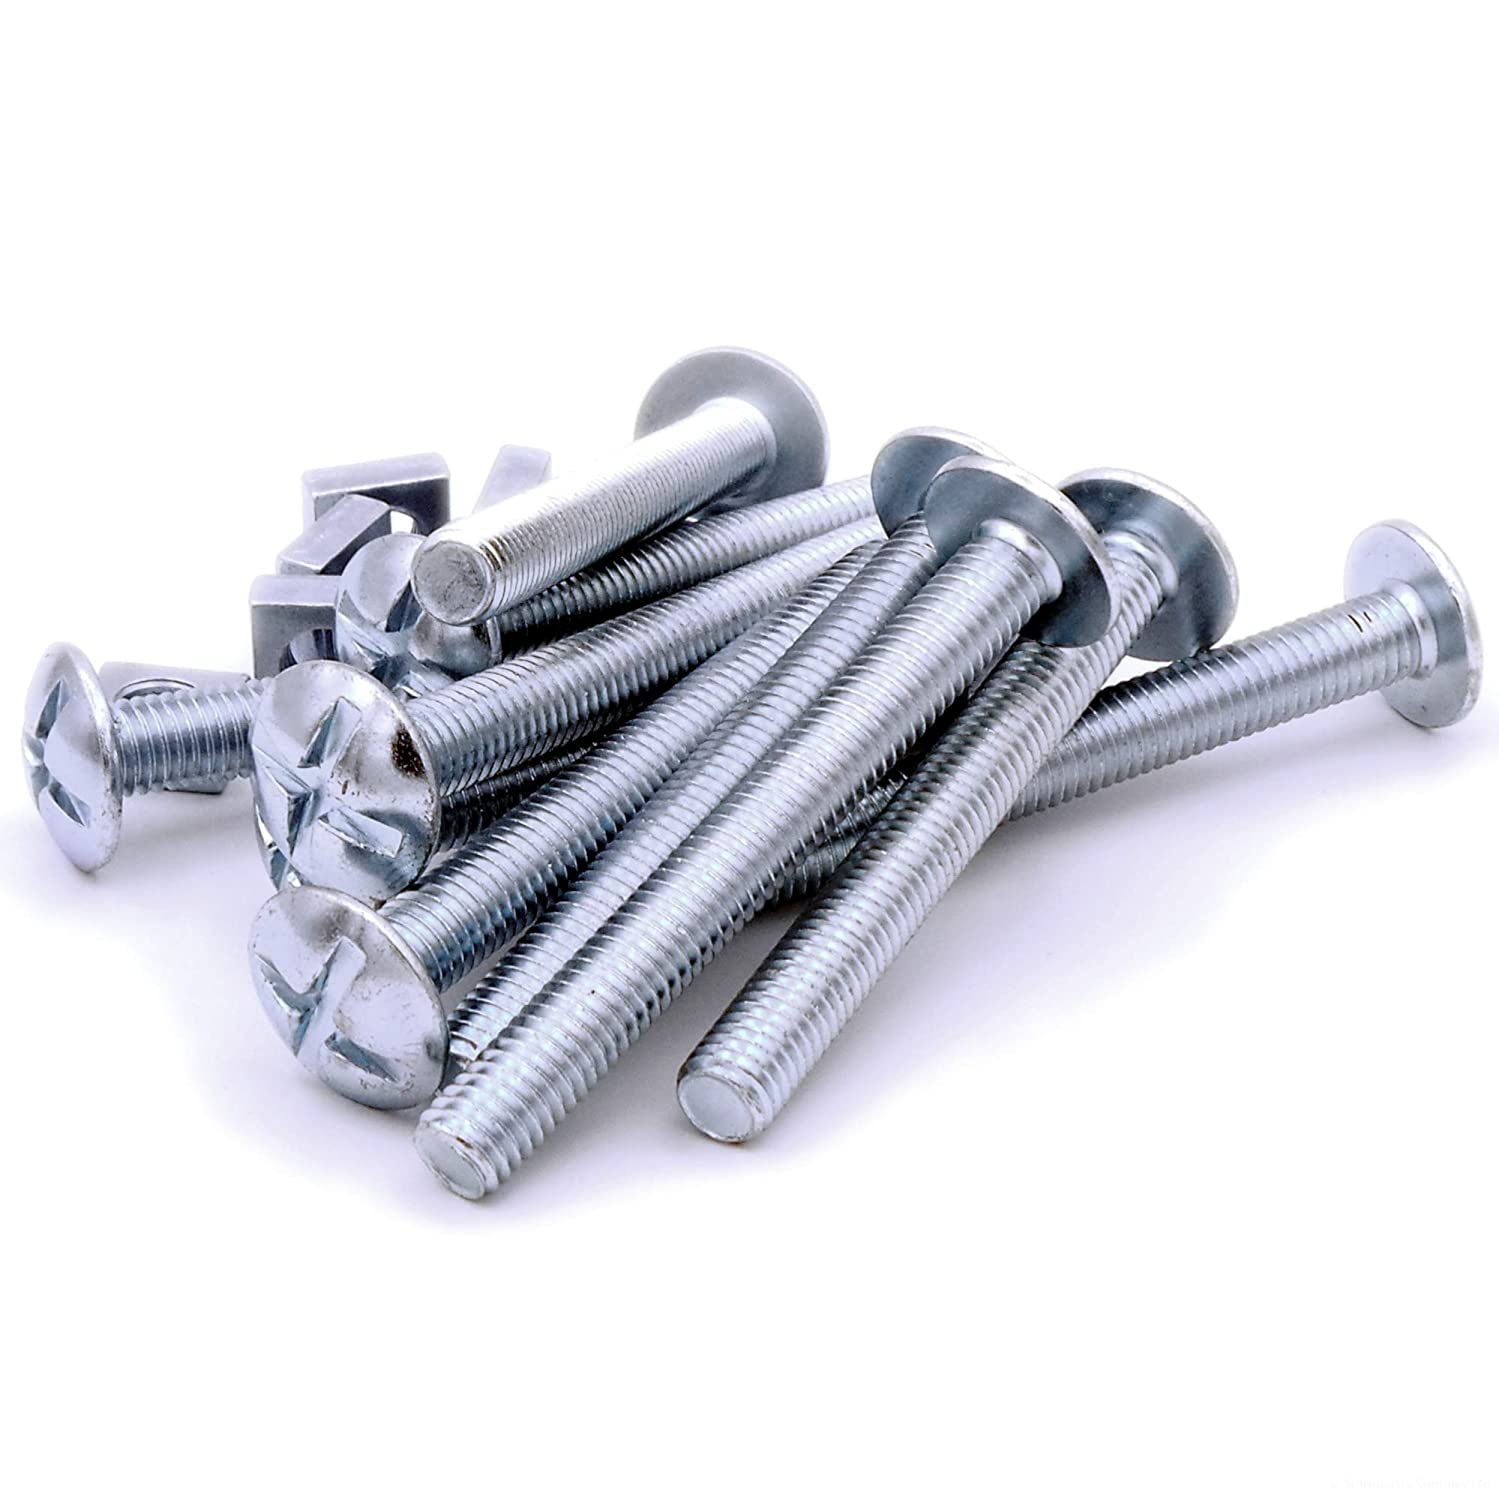 M8 (8mm x 80mm) Roofing Bolts & Nuts - Steel (Pack of 10) Singularity Supplies Ltd